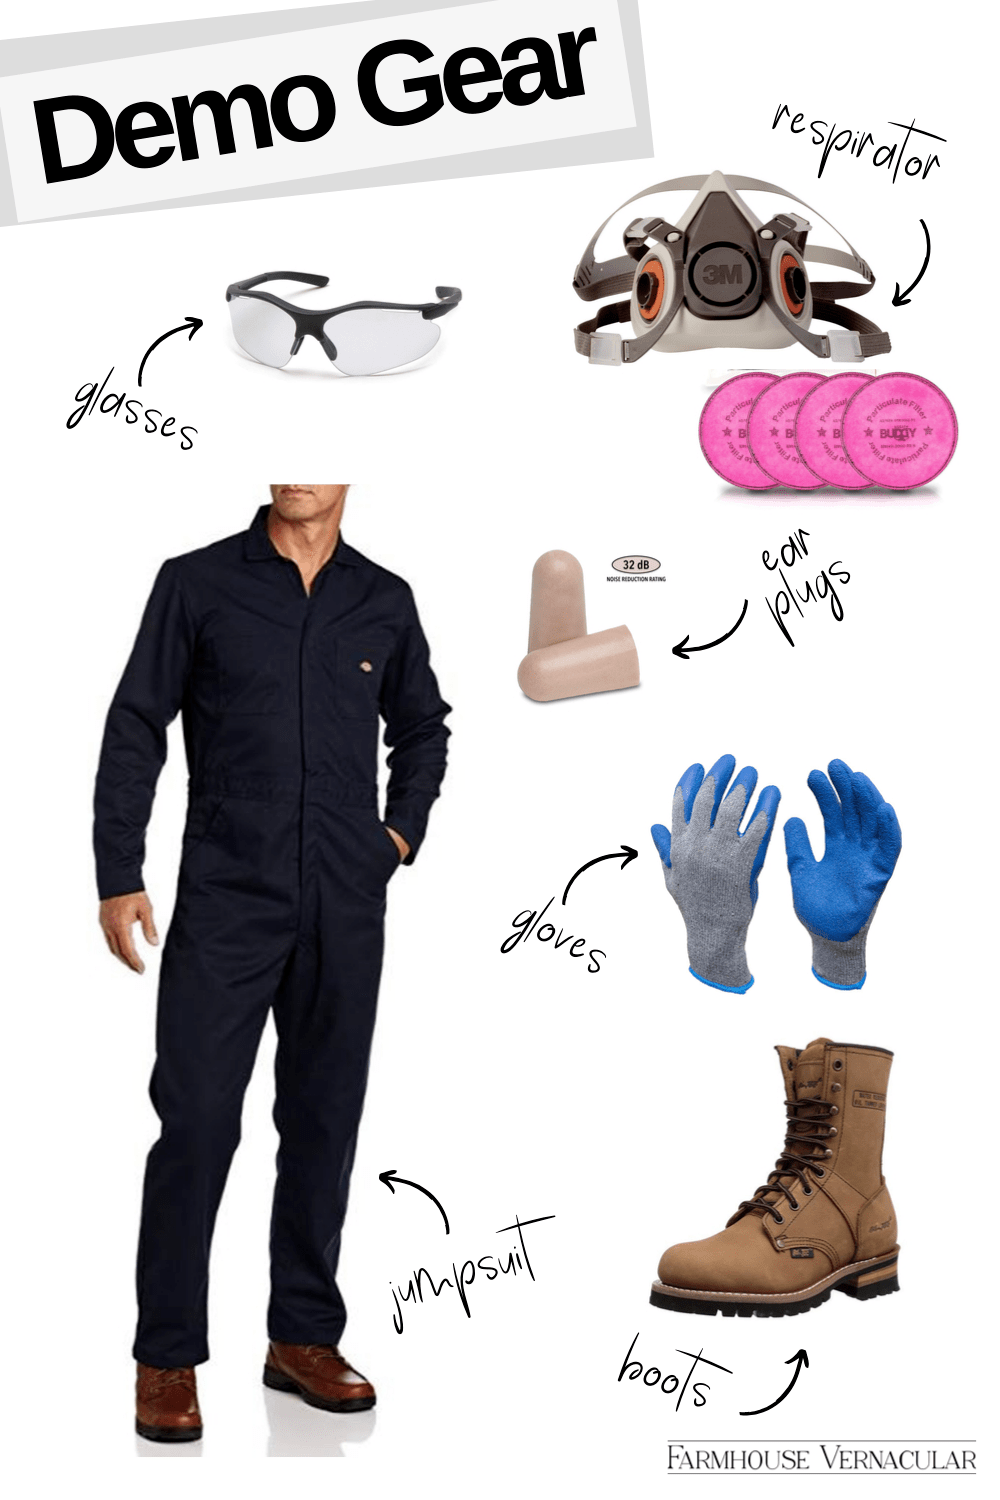 Glasses  |  Respirator  |  Filters  |  Ear Plugs  |  Gloves  |  Boots  |  Jumpsuit